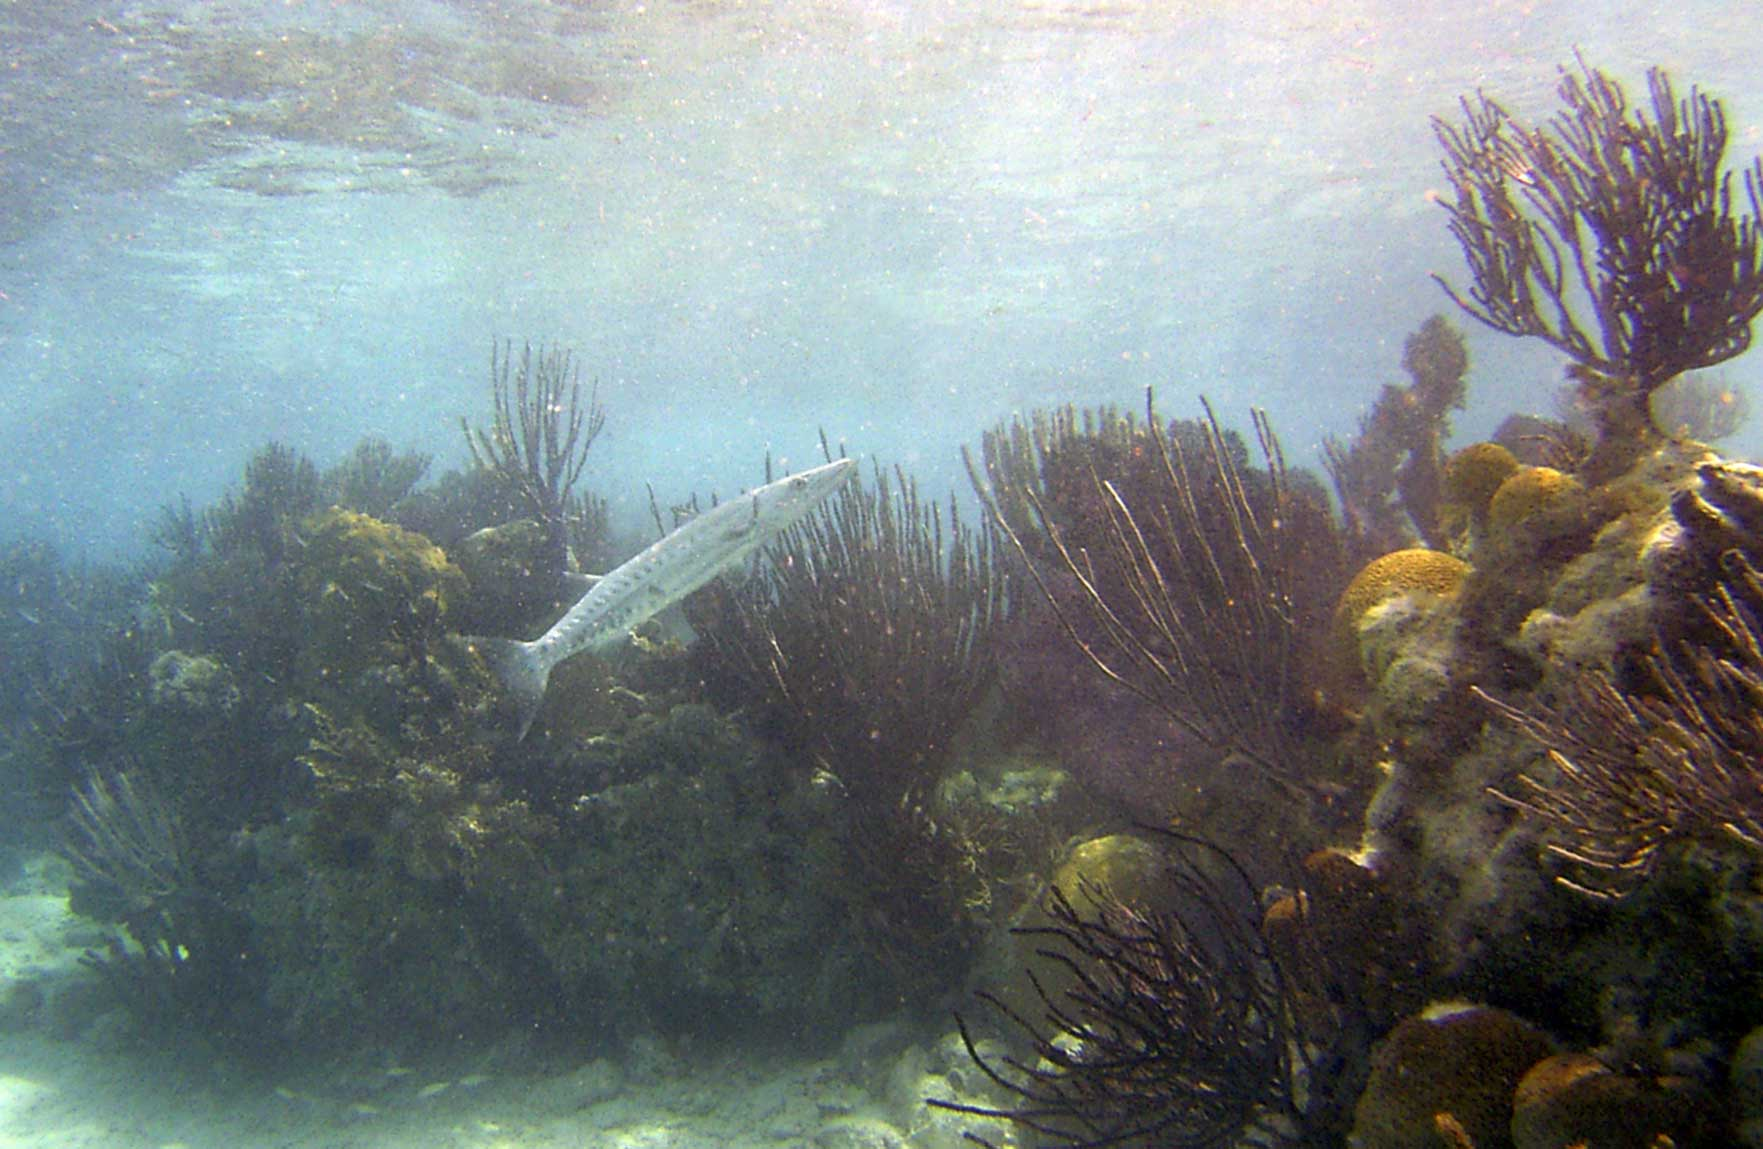 Barracuda on Hartley's reef, Bermuda in 2005